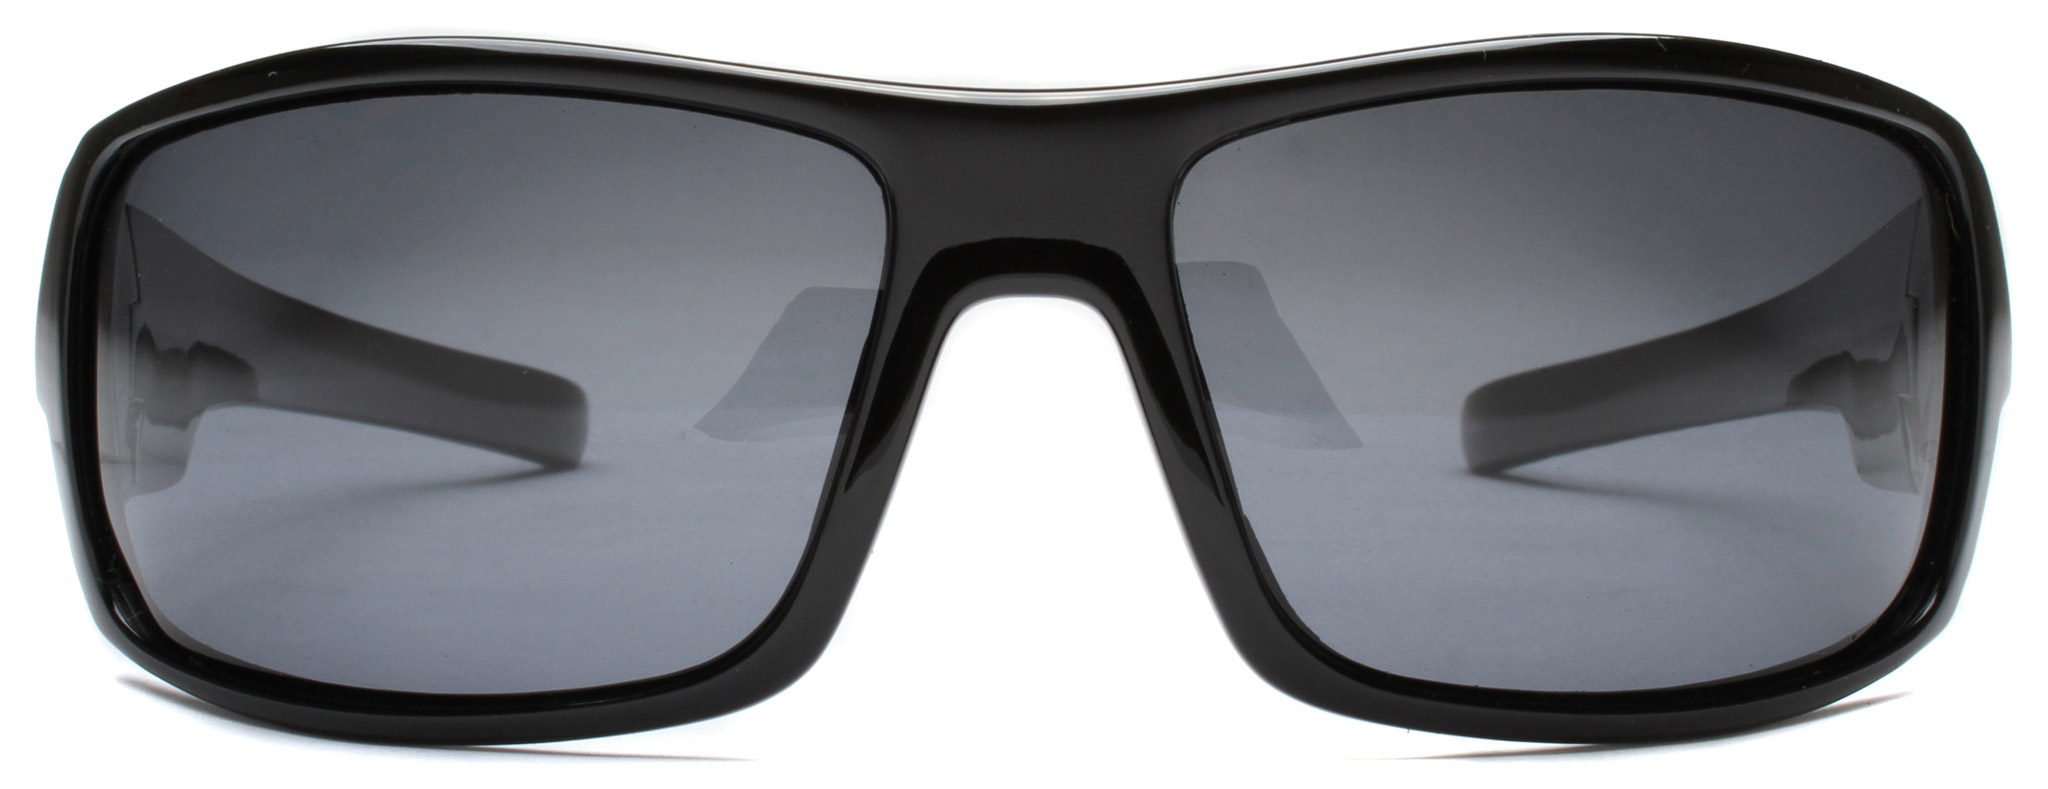 5b4422c782 Kreed Night Train Sunglasses-BLK Gloss